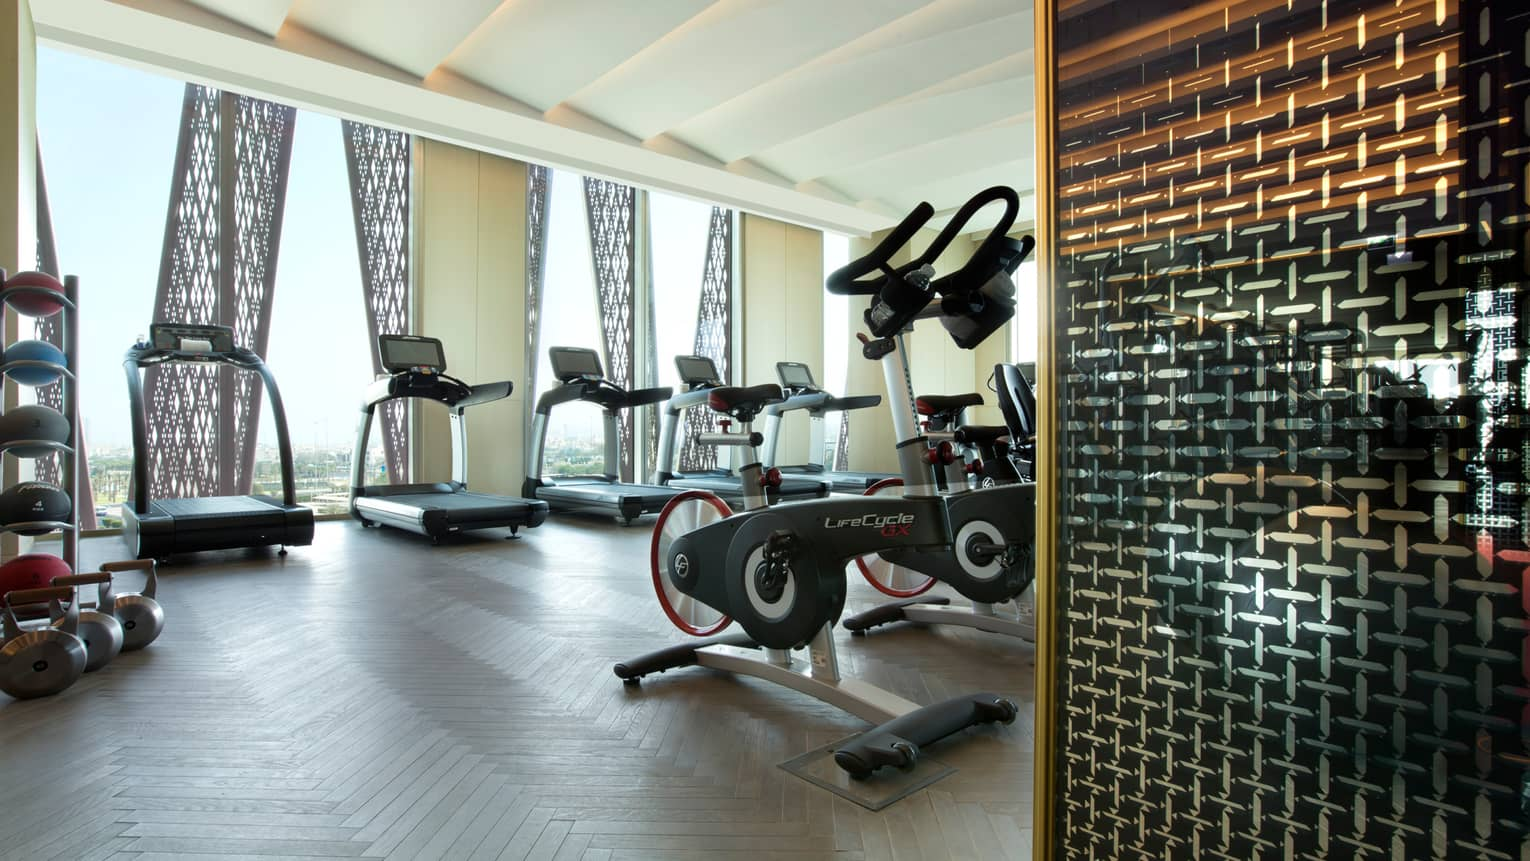 Row of treadmills in front of sunny window in fitness centre, cardio bikes